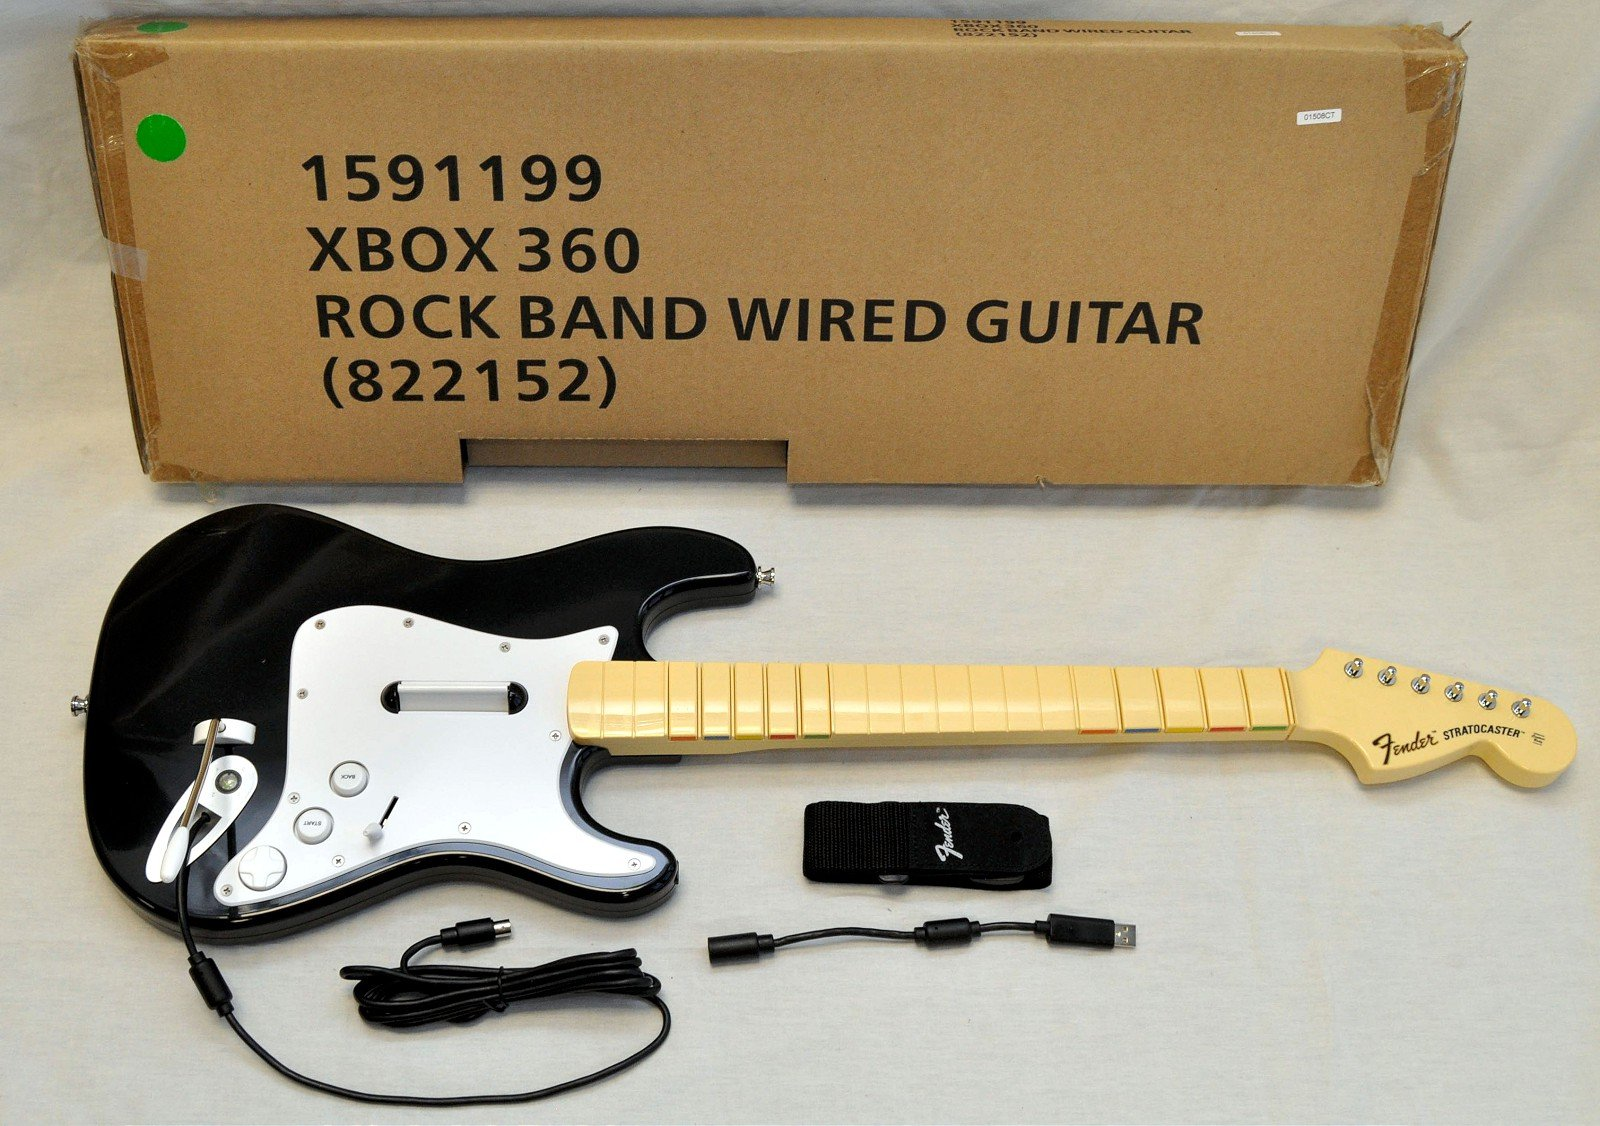 Harmonix OFFICIAL Rock Band 1 Wired Fender Stratocaster Guitar Controller for Xbox 360, Black by Harmonix (Image #1)